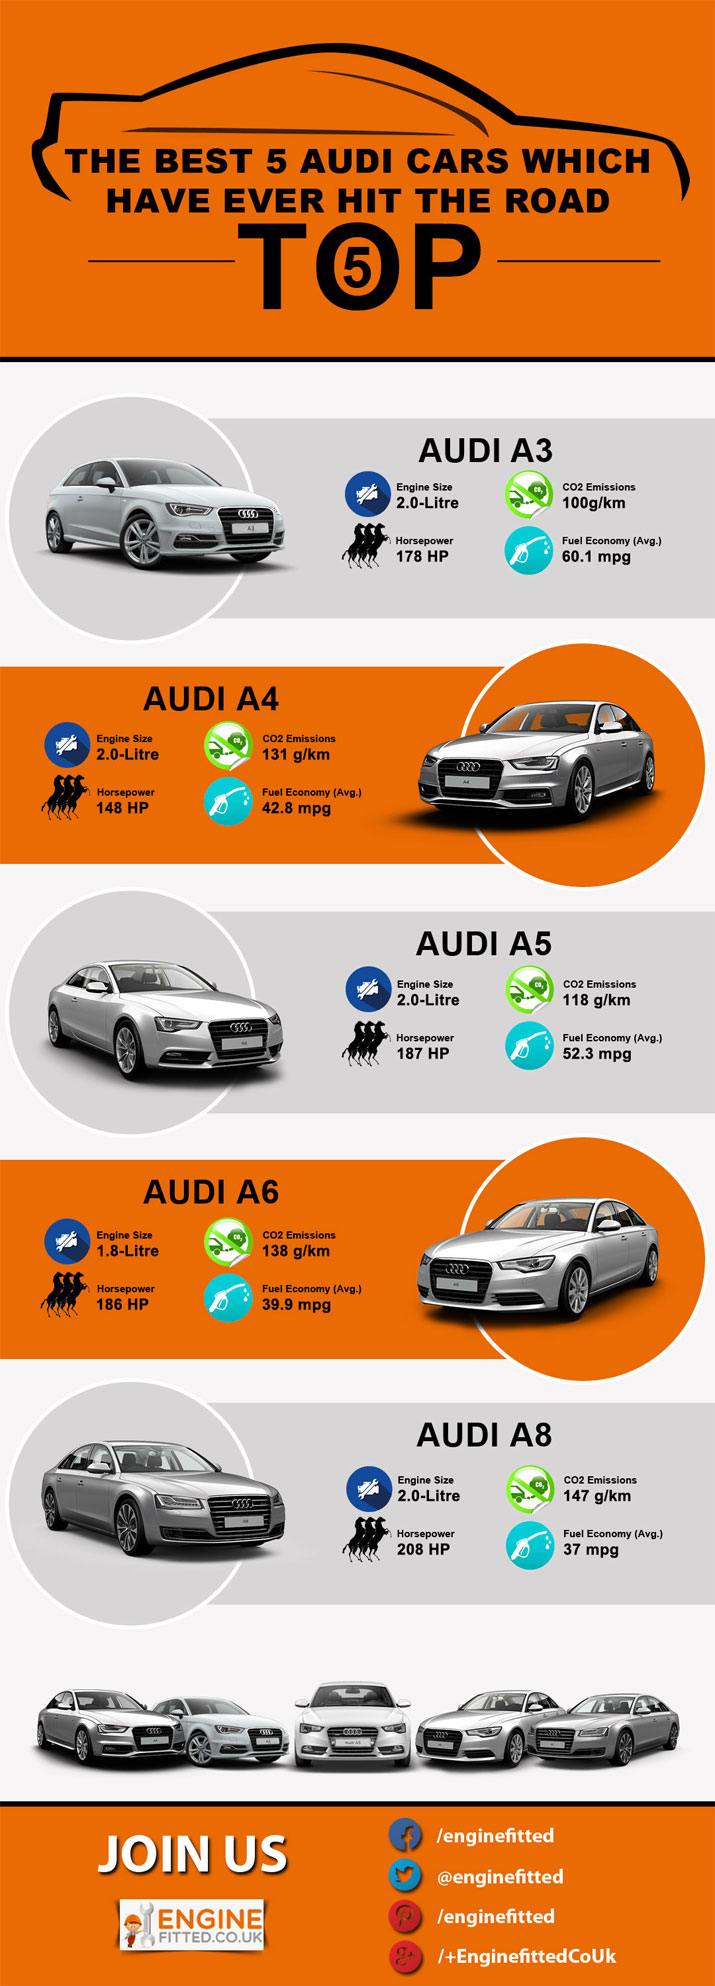 The-Best-5-Audi-Cars-Which-Have-Ever-Hit-The-Road-infographic-plaza